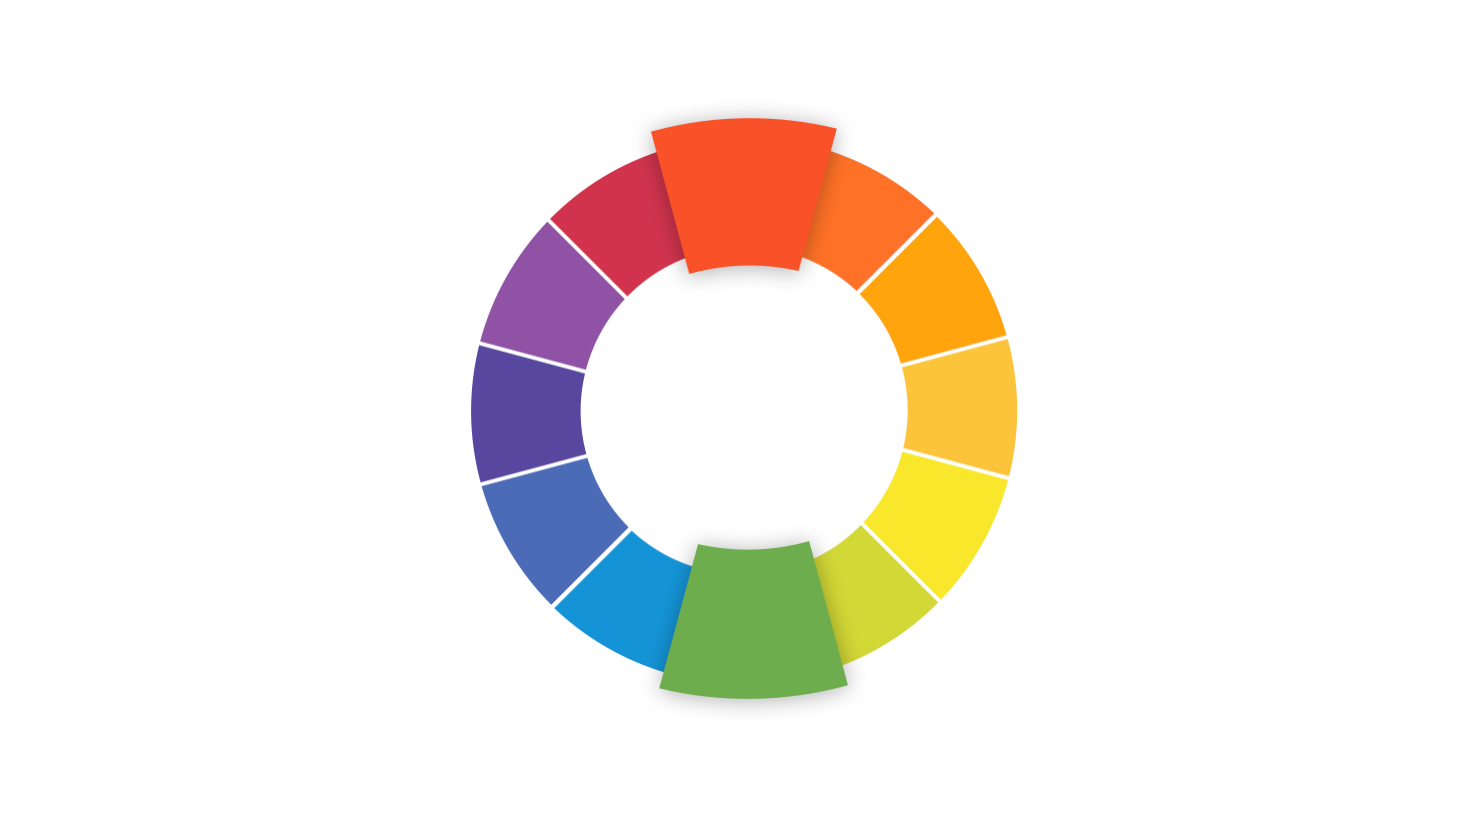 Color wheel showing complimentary color palette